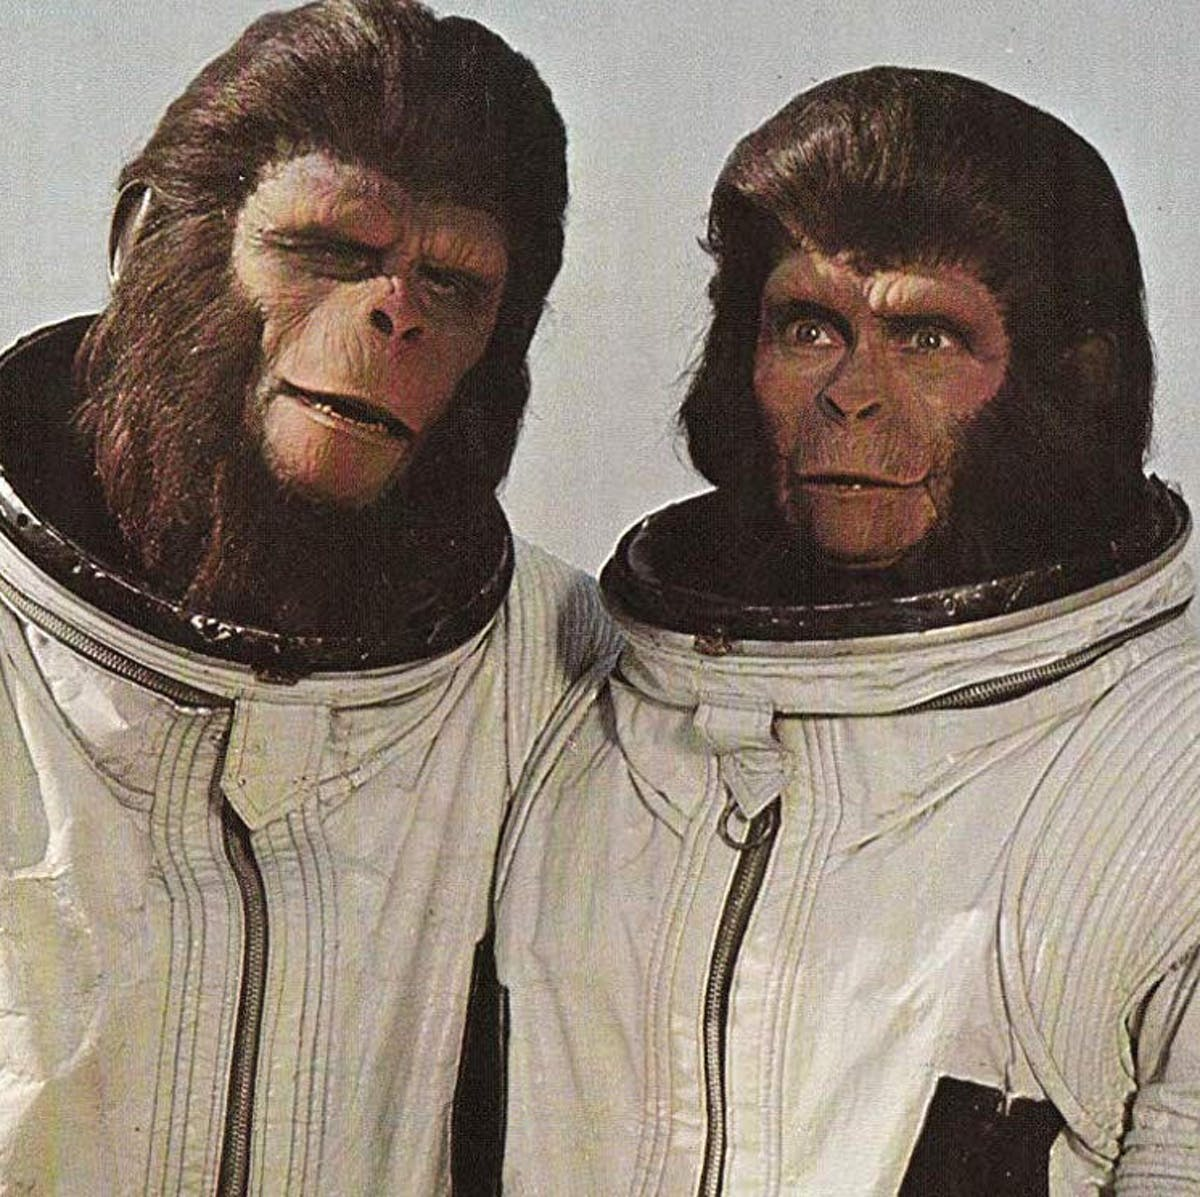 Everything you need to know about the latest 'Planet of the Apes' reboot